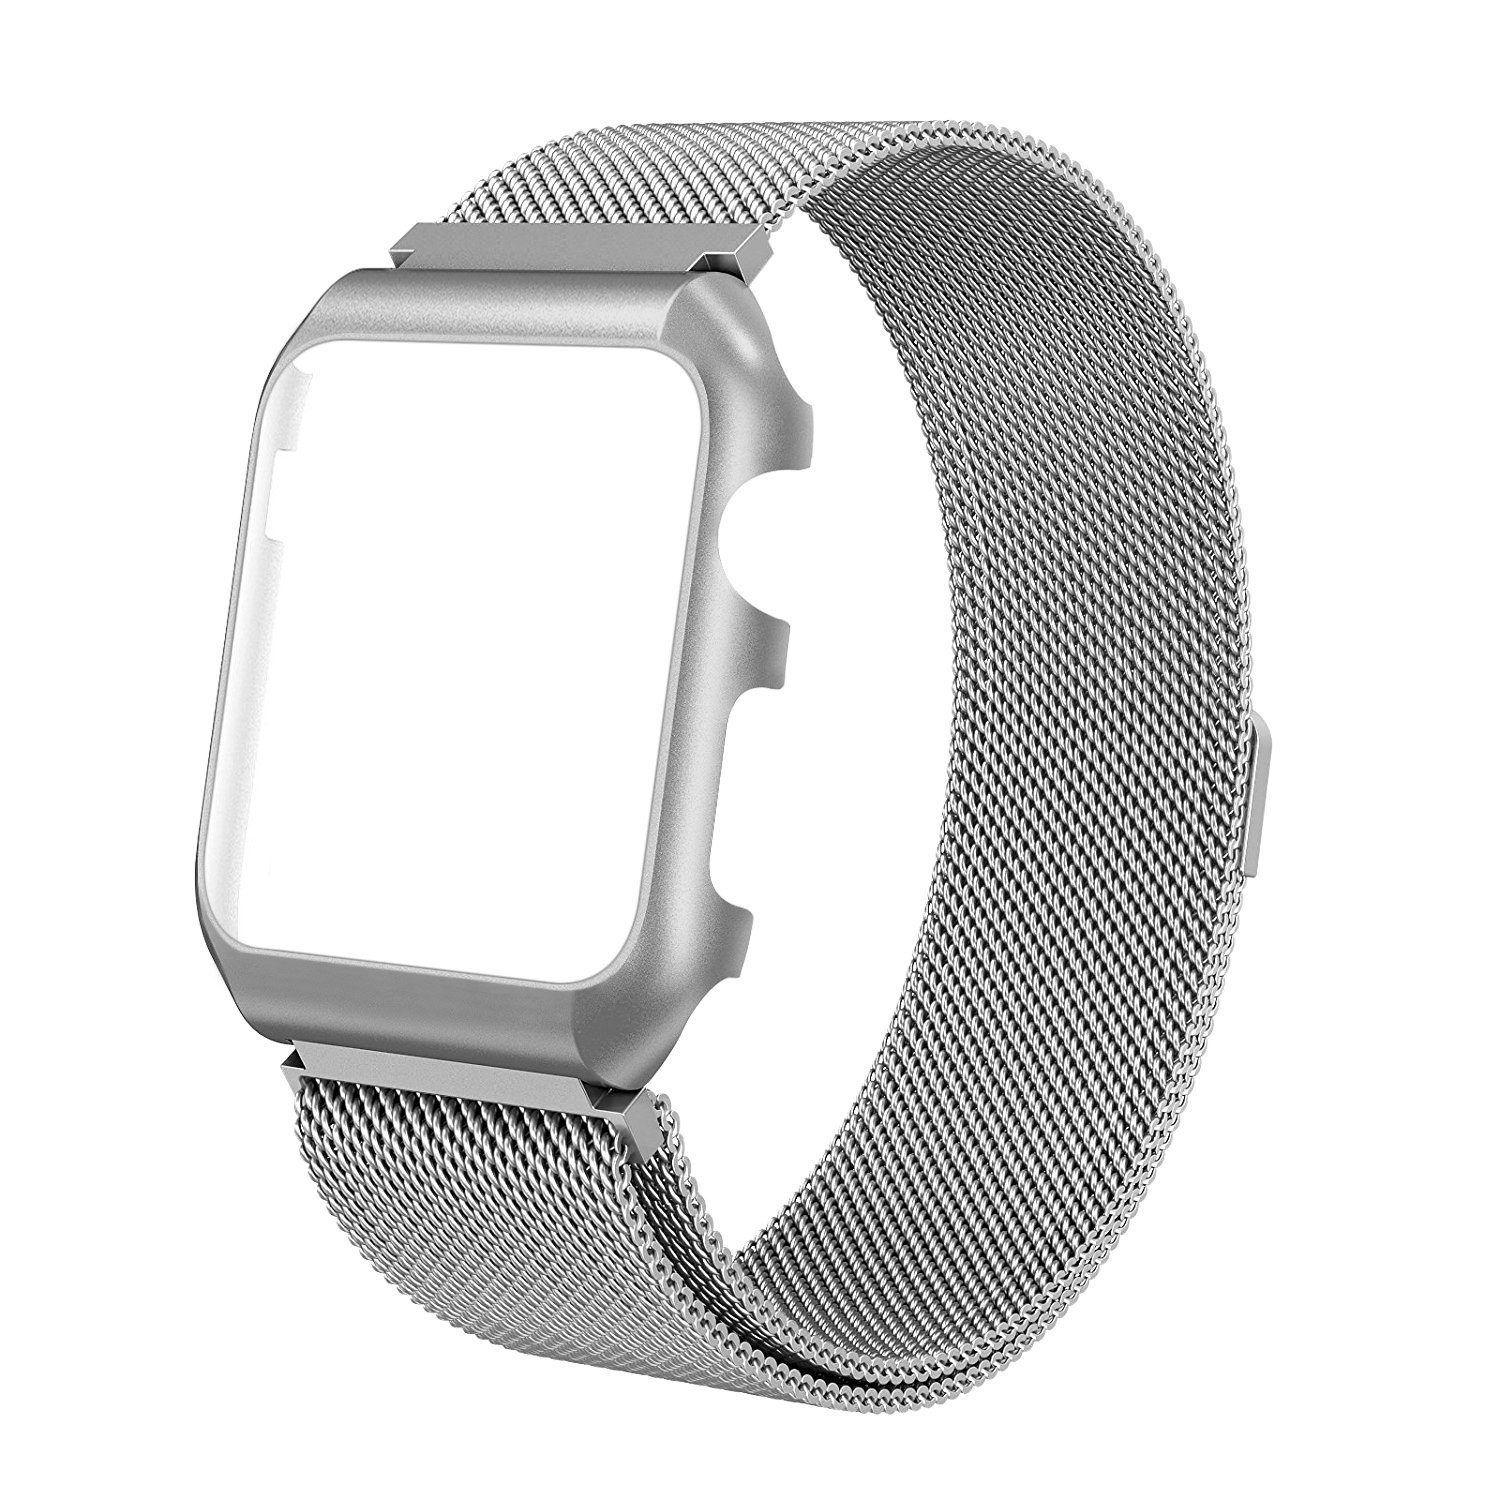 For Apple Watch Band 38mm 42mm Milanese Loop Stainless Steel Replacement Band with Metal protective Case Band for Apple Watch Series 3 Series 2 Series 1 Sport & Edition (Silver, For apple watch 42mm)